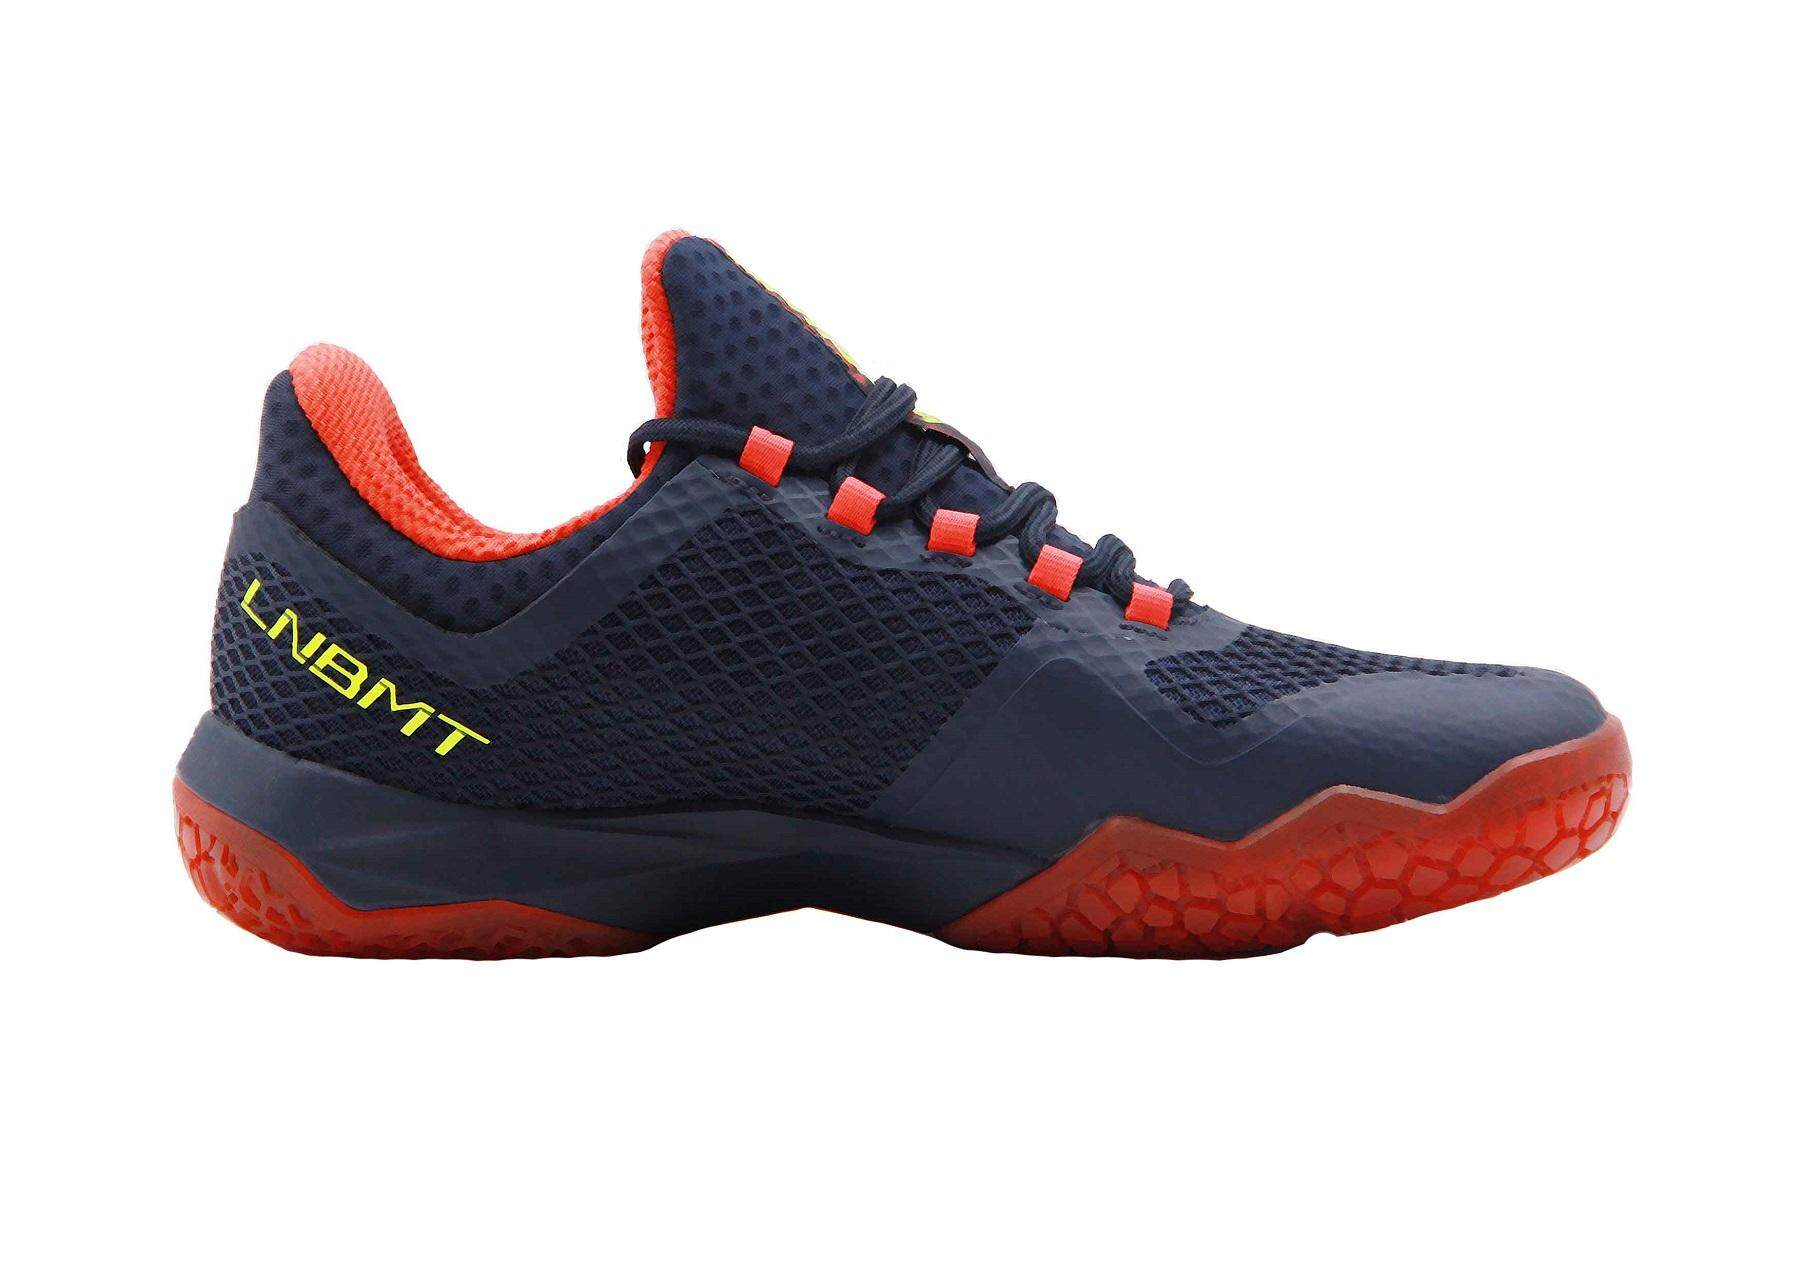 Li-Ning Shadow 2018 Badminton Training Shoes AYTN065